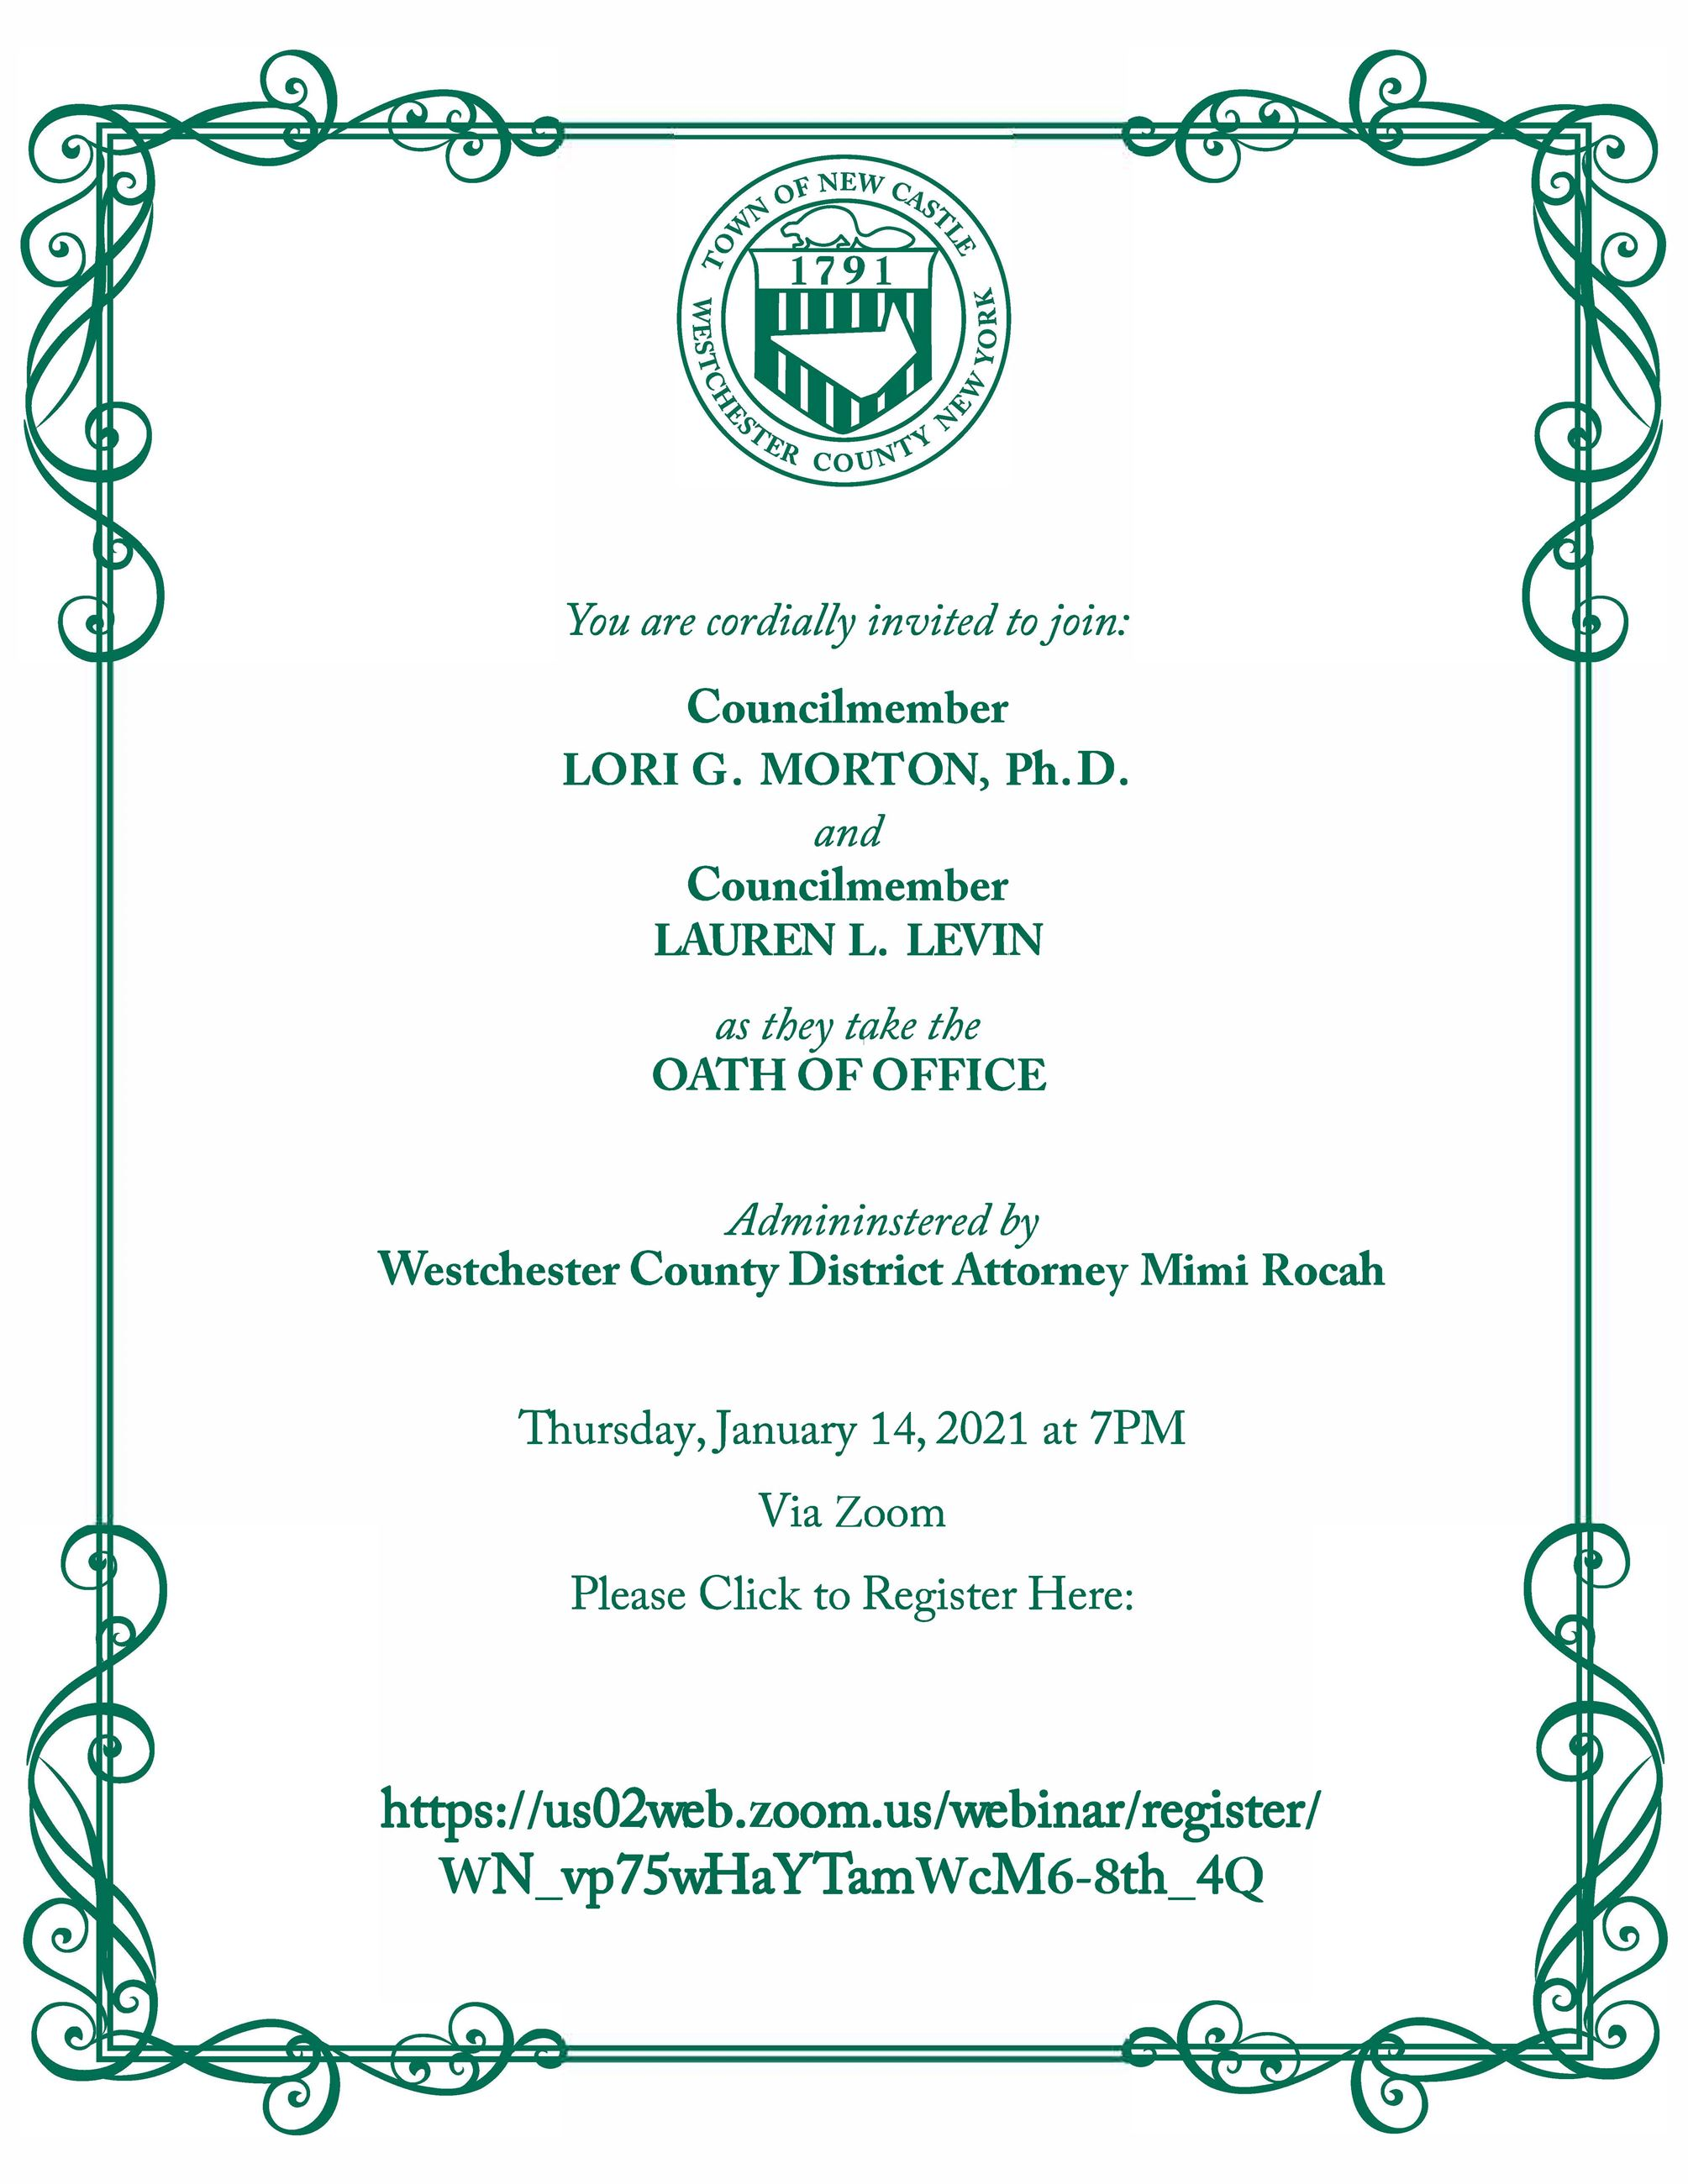 Town of New Castle Inauguration 2021 Invitation